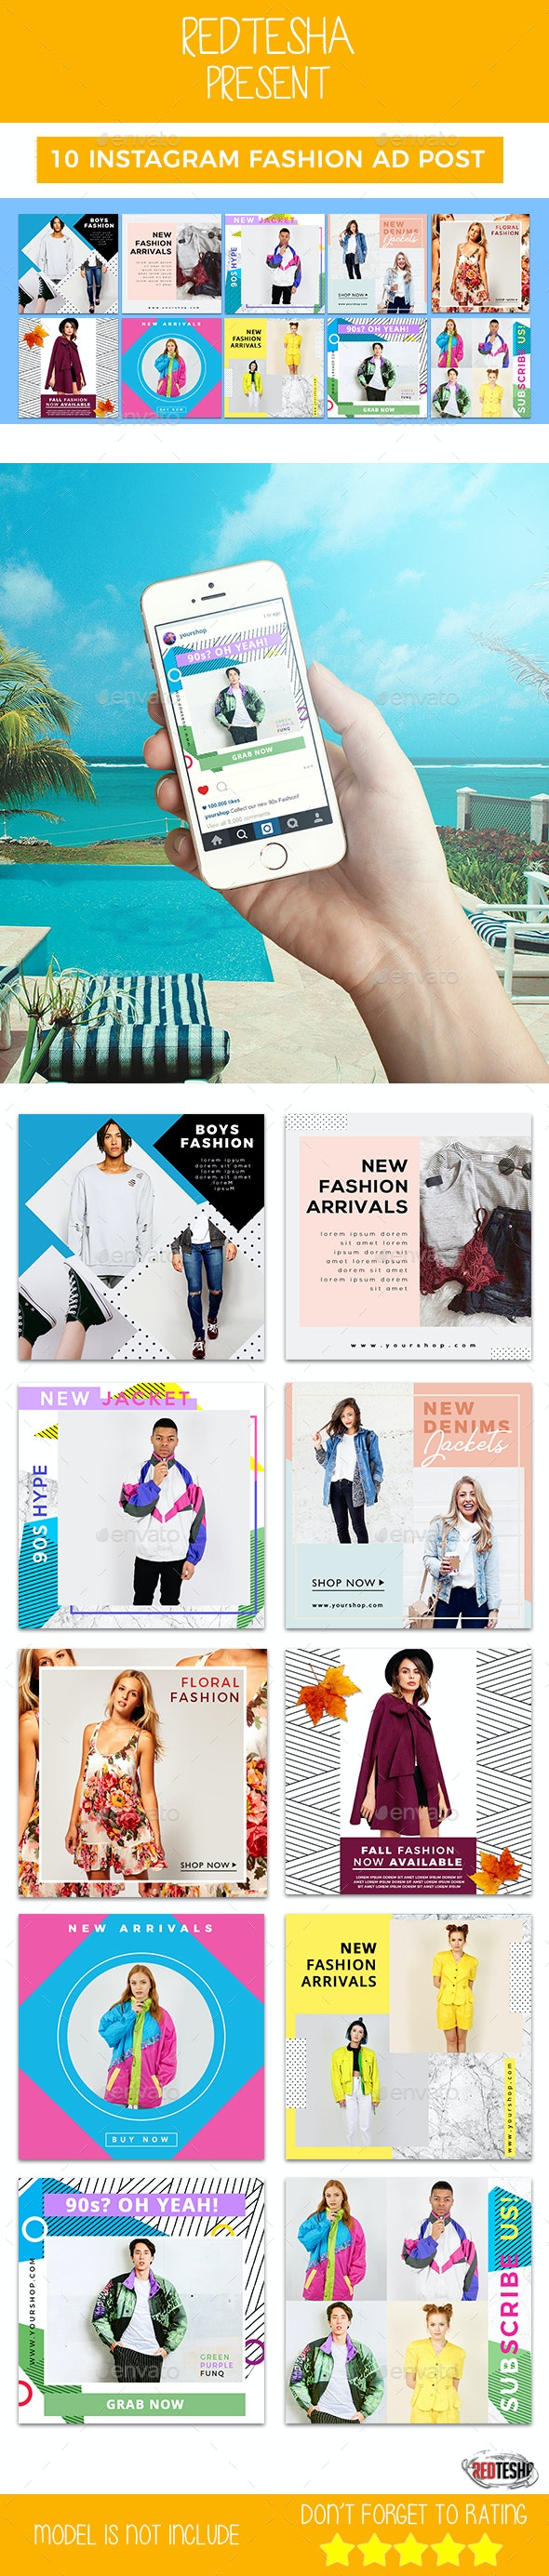 Instagram Fashion Banner #14 - Banners & Ads Web Elements